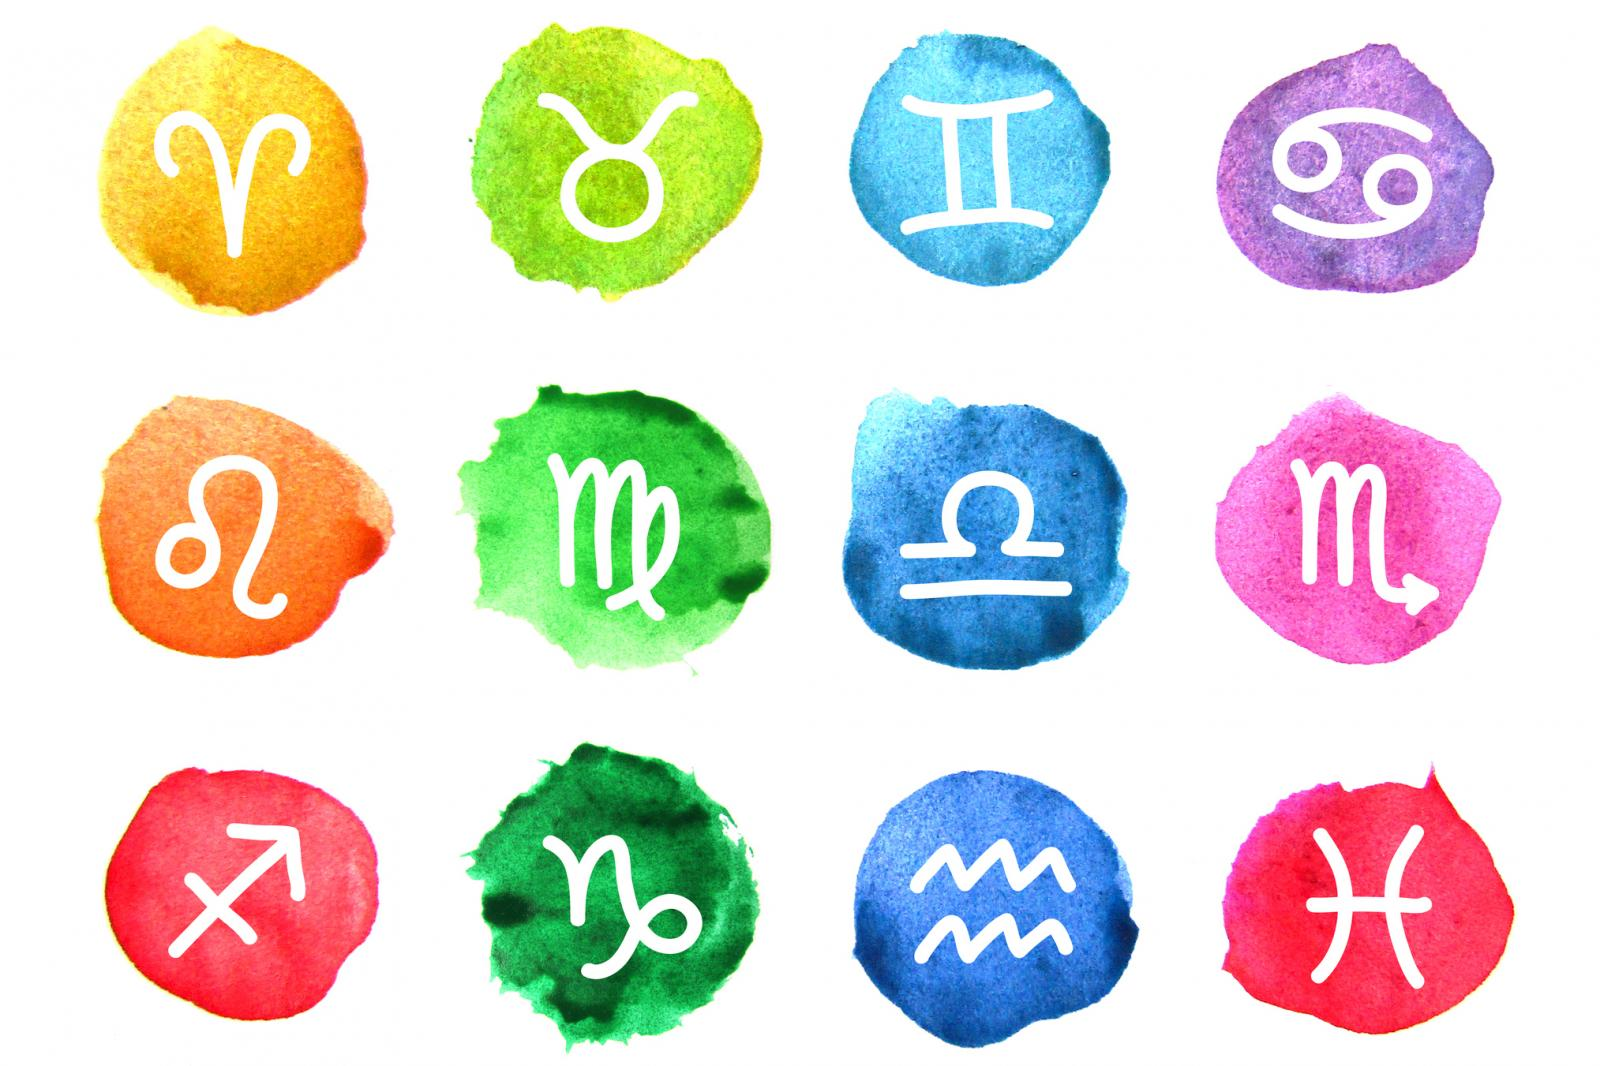 Astrological Sign Glyphs